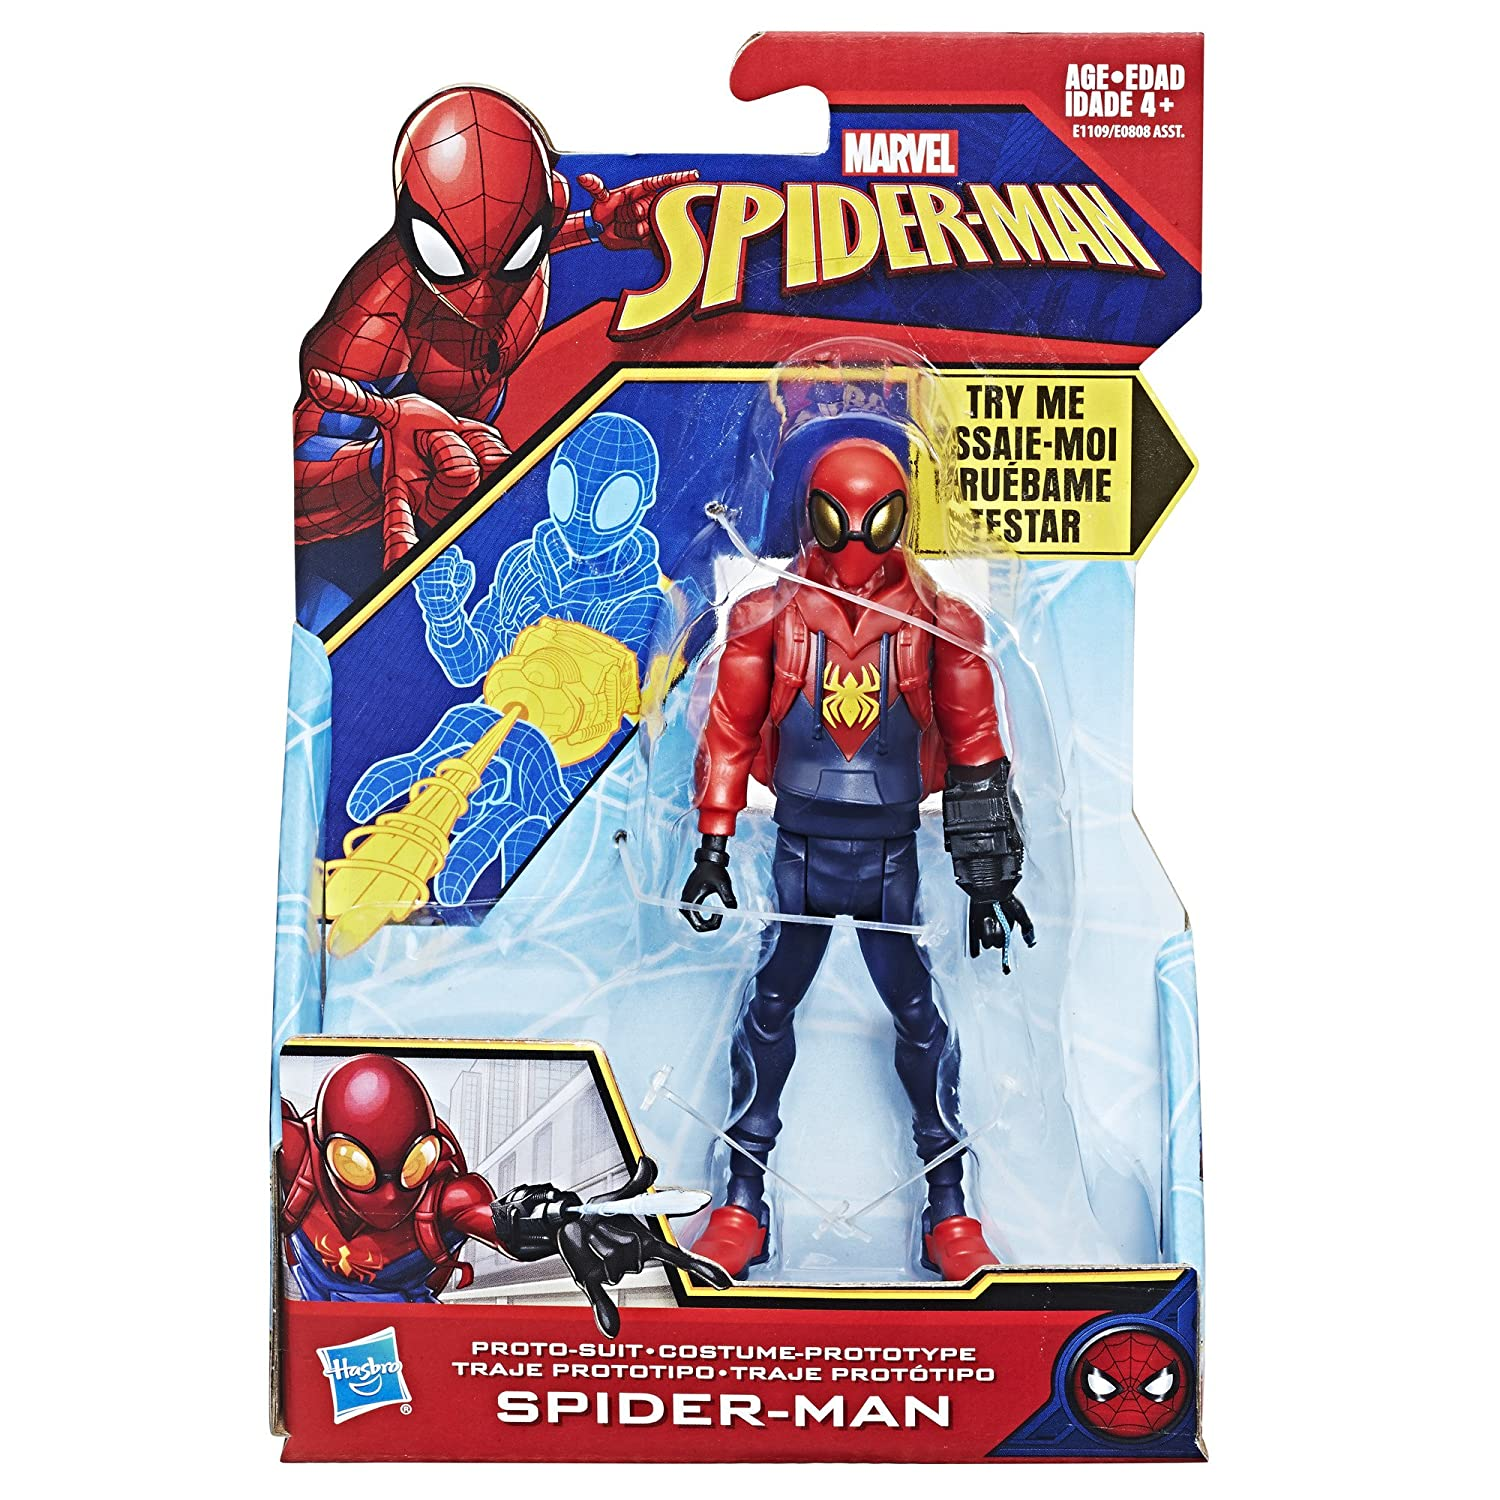 Spider-Man 6-inch Proto-Suit